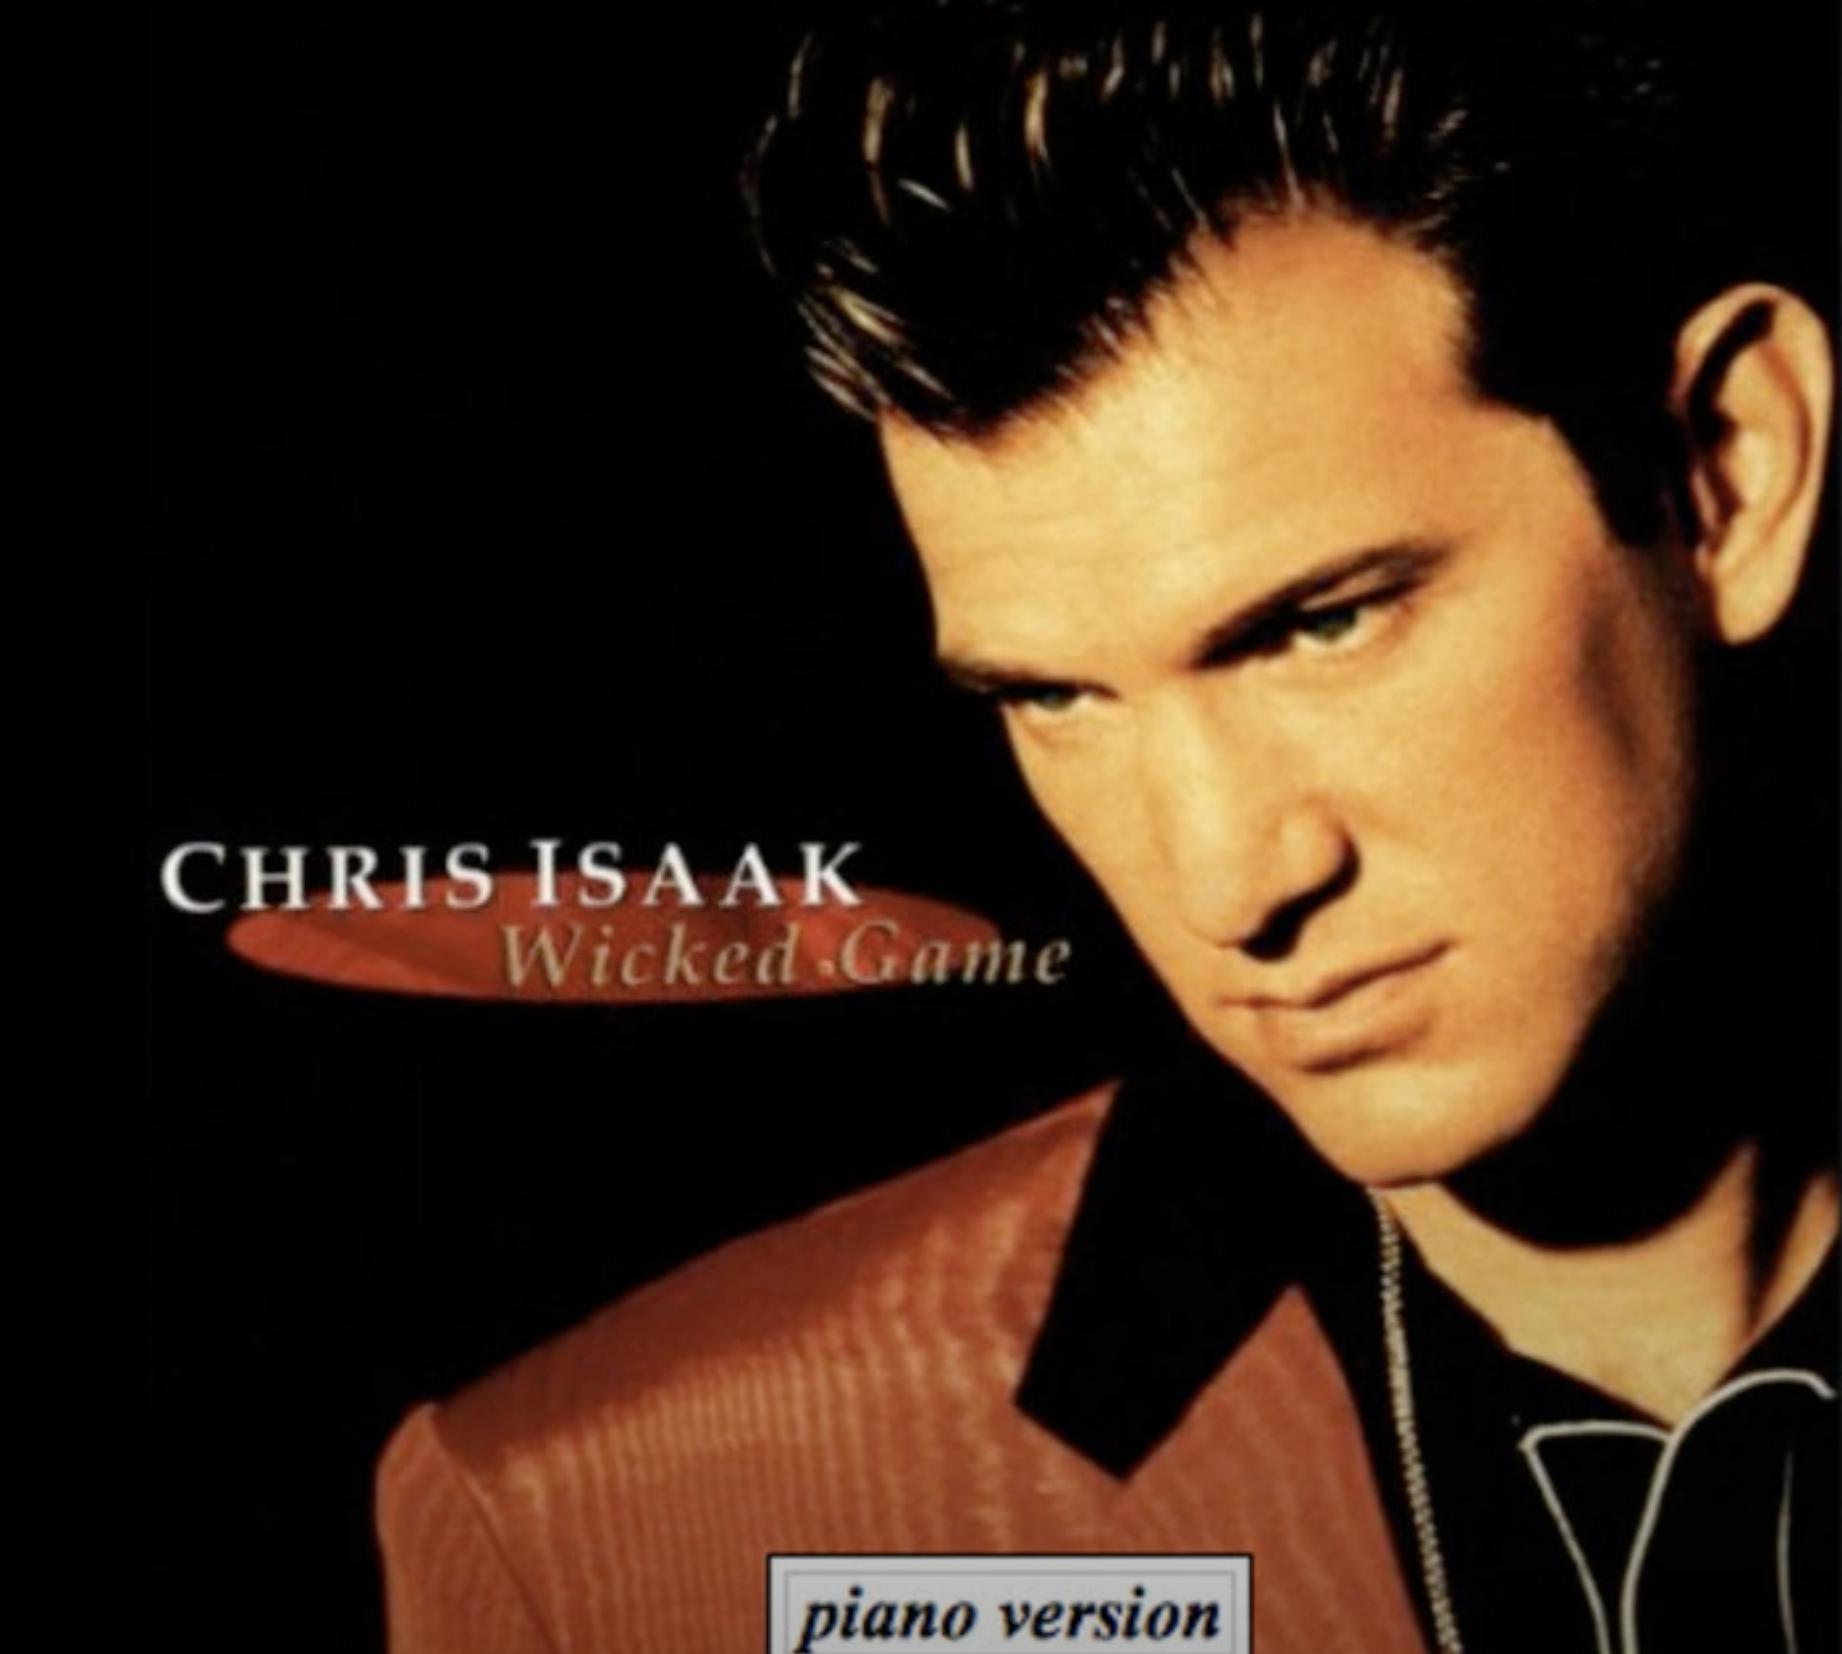 CHRIS ISAAK  Wicked game (piano version) (cover mashup by DoM)